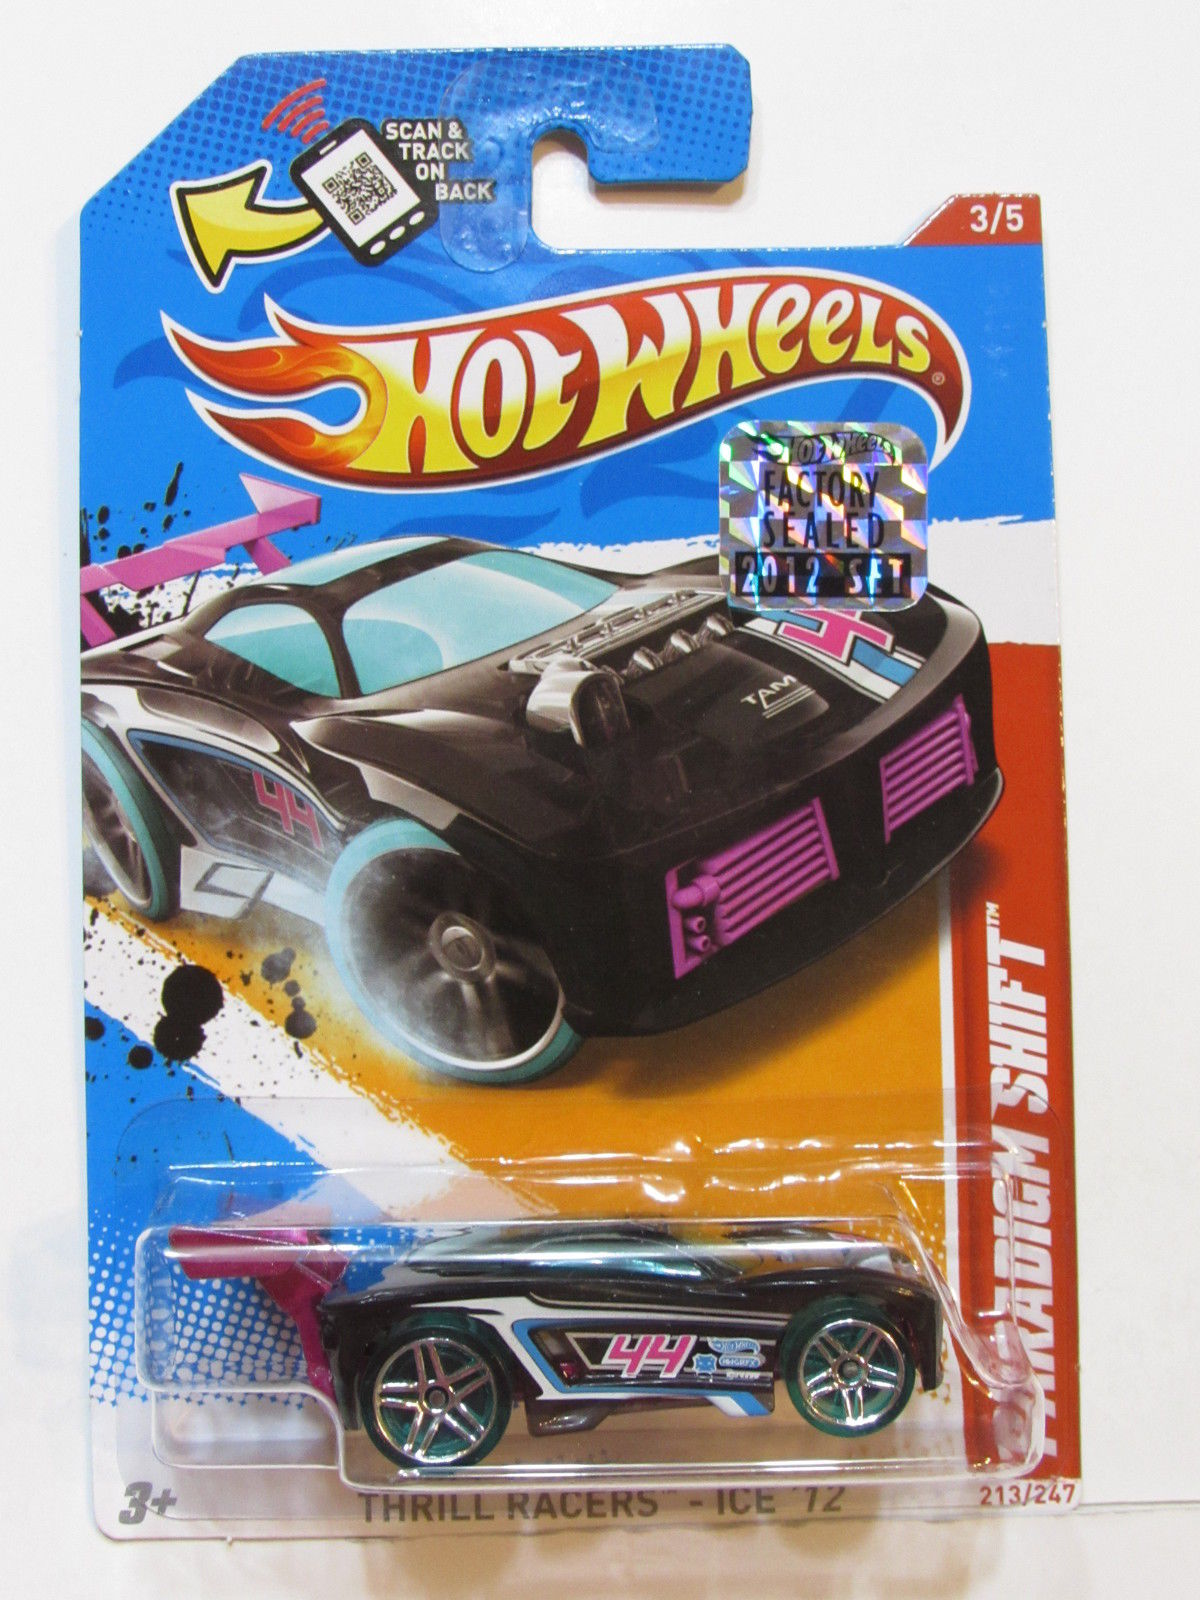 HOT WHEELS 2012 THRILL RACERS-ICE PARADIGM SHIFT FACTORY SEALED